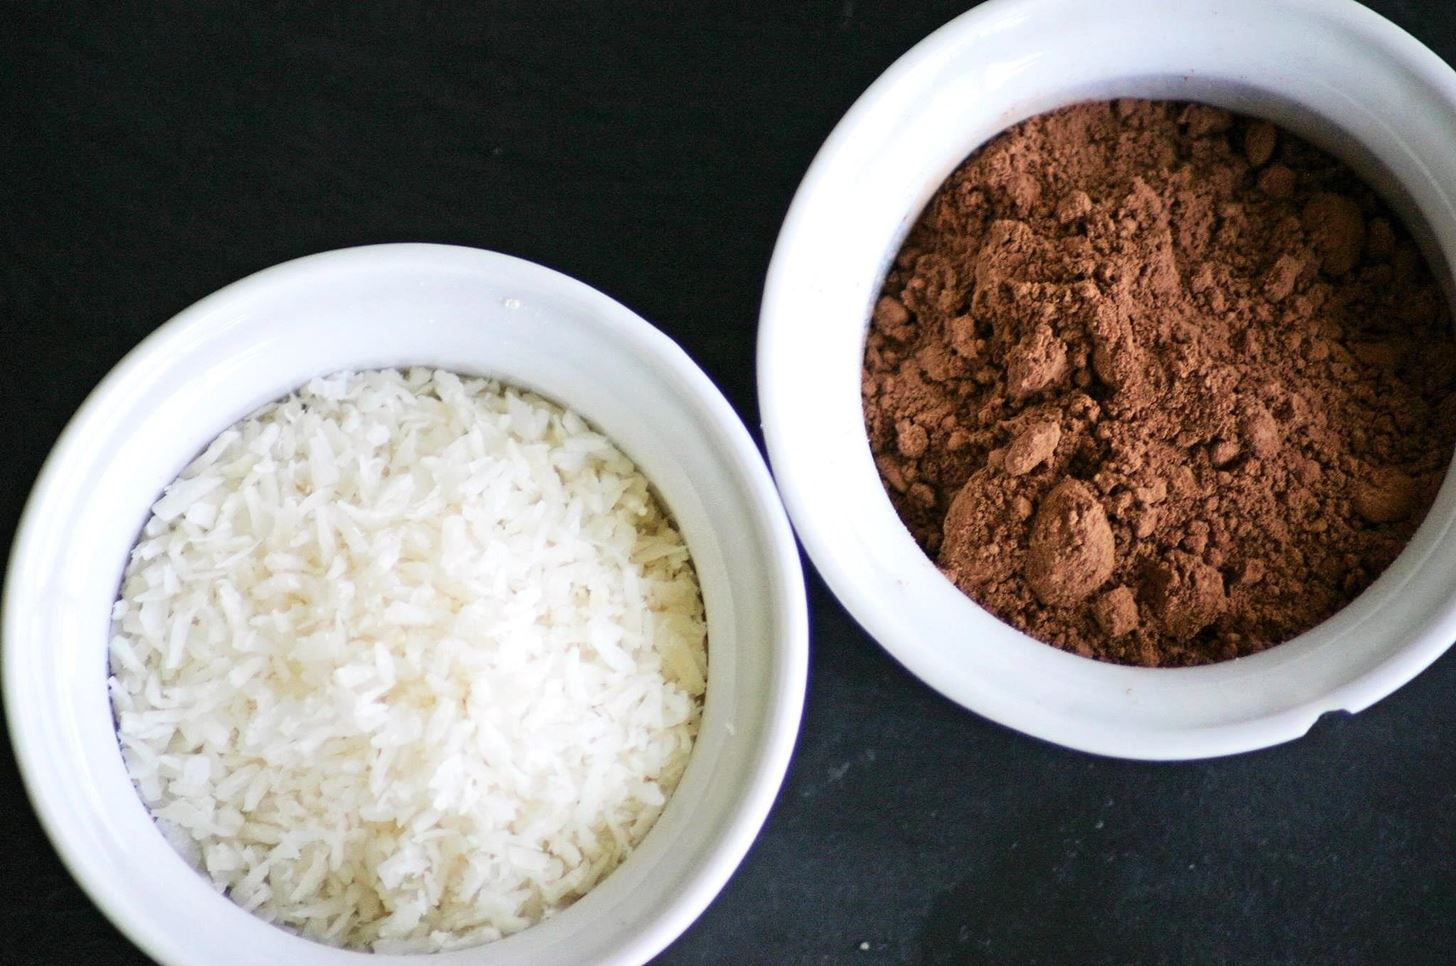 How & Why You Should Make Your Own Protein Powder